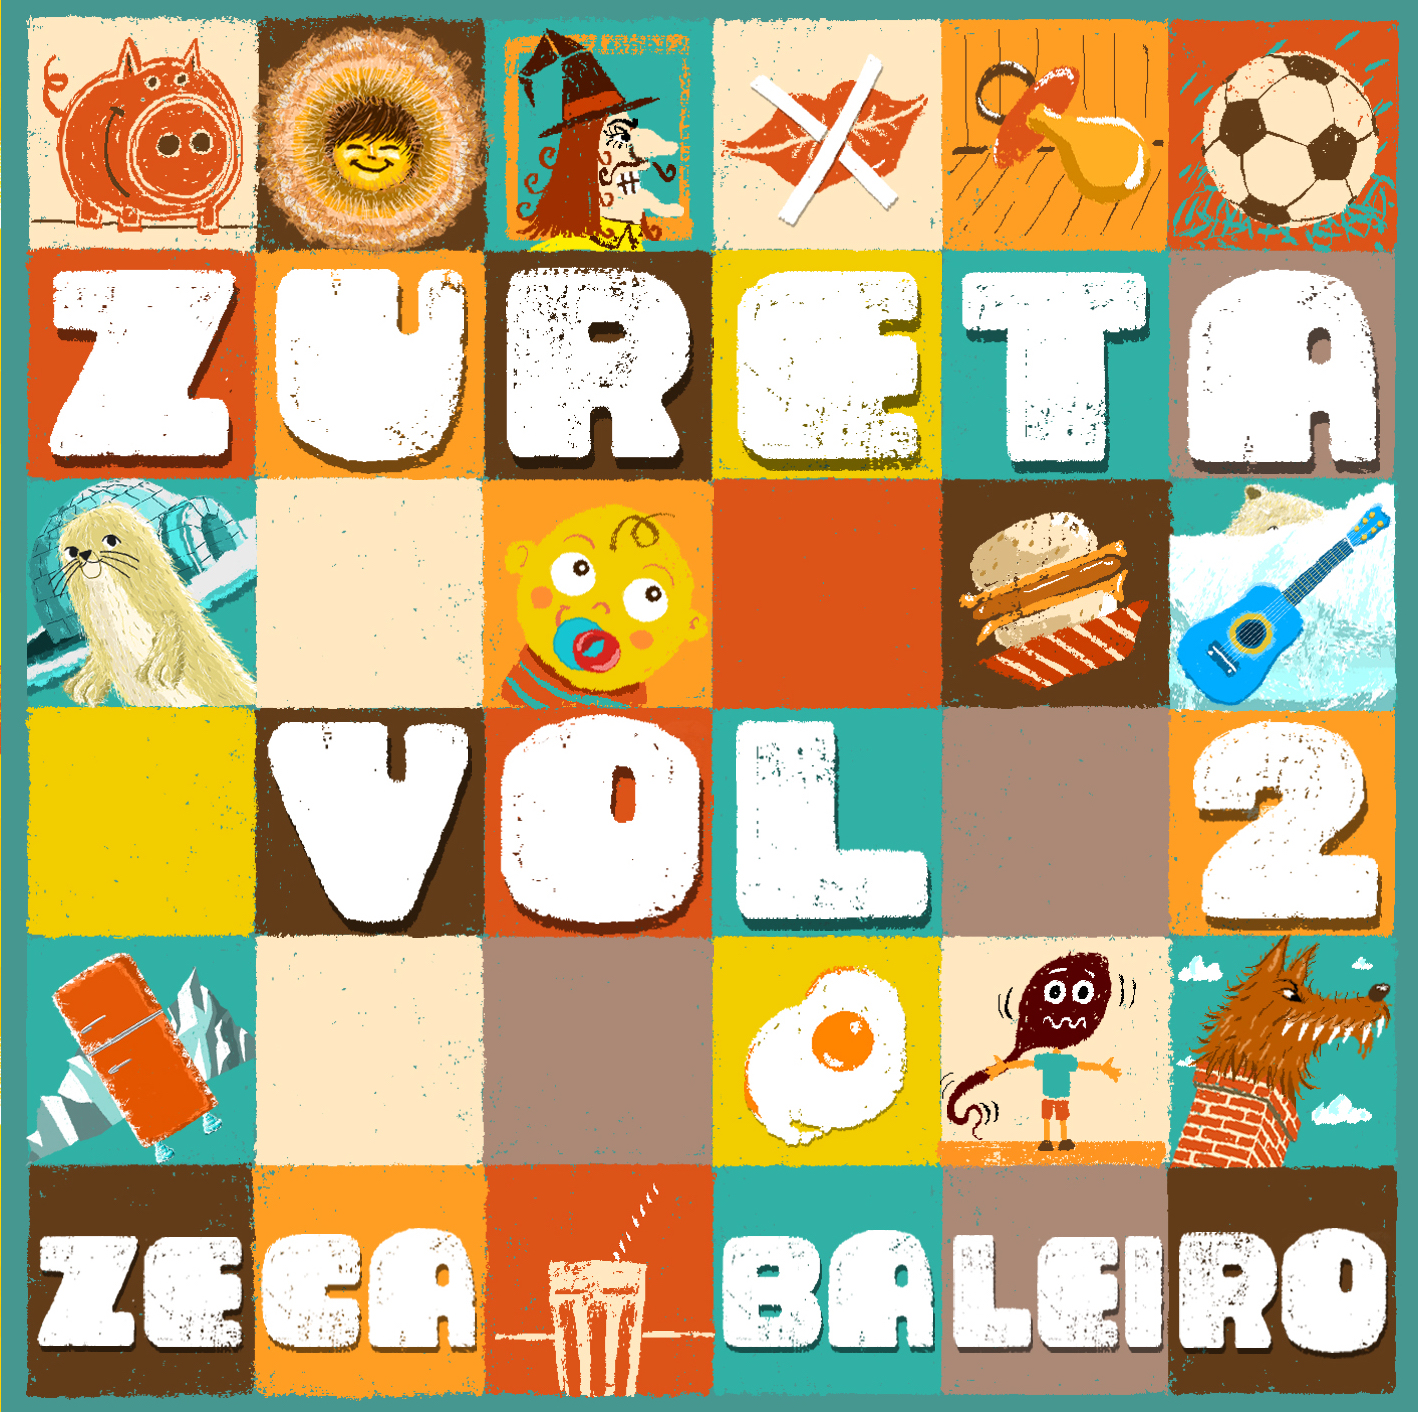 CD Zureta - Vol 2